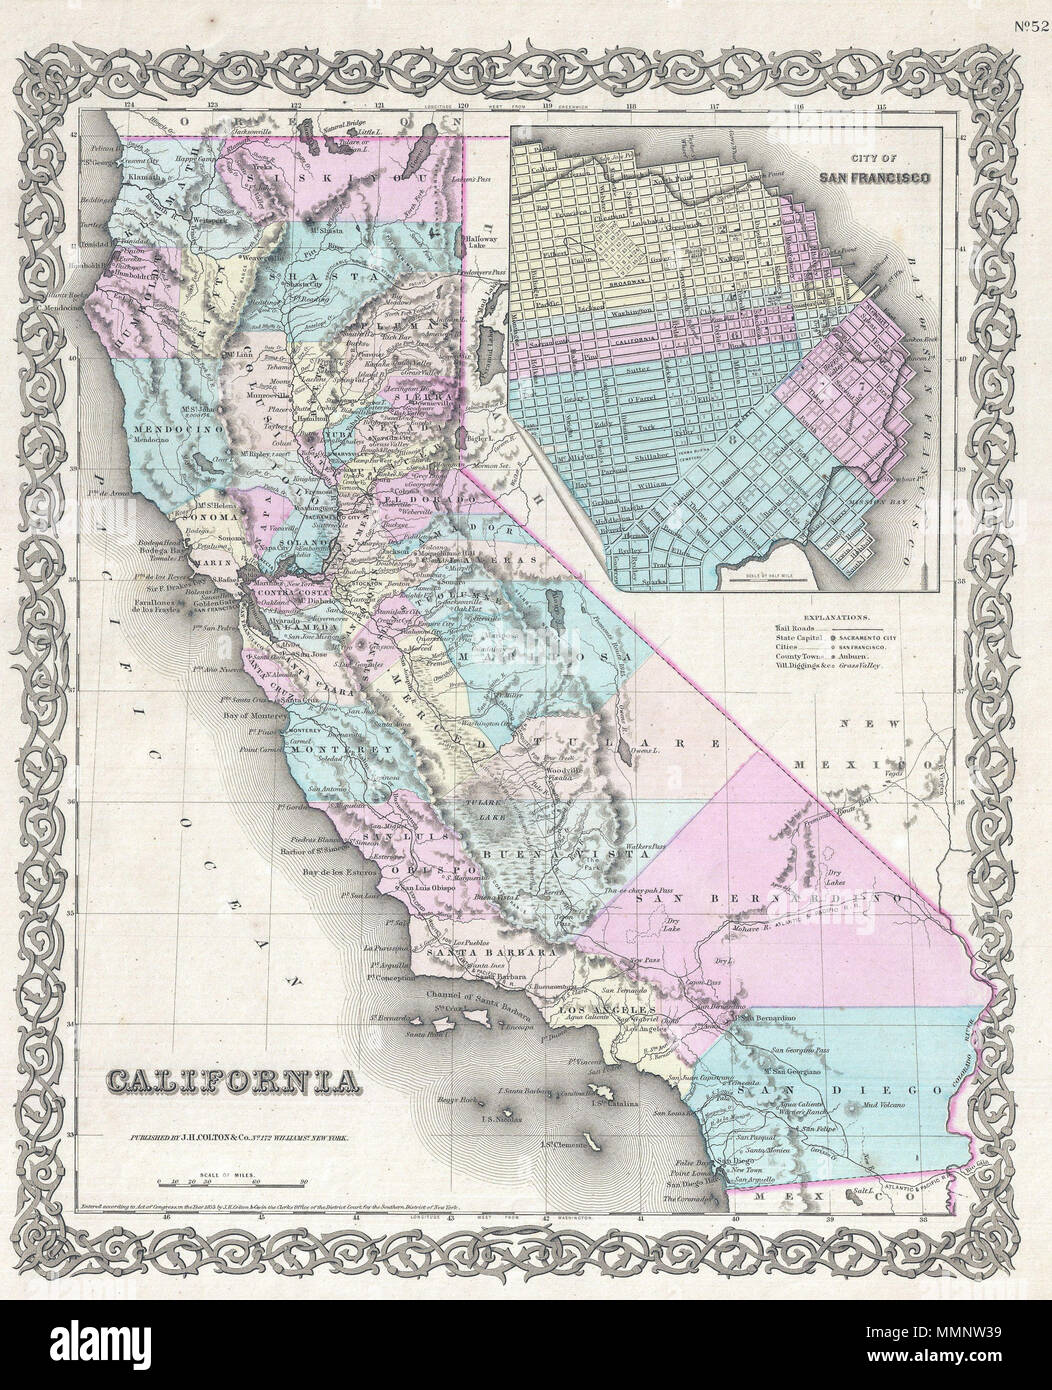 .  English: Issued roughly six years after the 1849 California Gold Rush, this is a beautiful 1855 first edition first state example of Colton's map of California. Colton's California with its San Francisco inset is one of the rarest and most desirable of all Colton atlas maps as it beautifully illustrates the rapid development throughout the state that followed in the wake of the Sutter's Mill discovery. Like most of Colton's state maps, this map was derived from an earlier wall map of North America produced by Colton and D. Griffing Johnson. Covers the entire state of California with a large - Stock Image